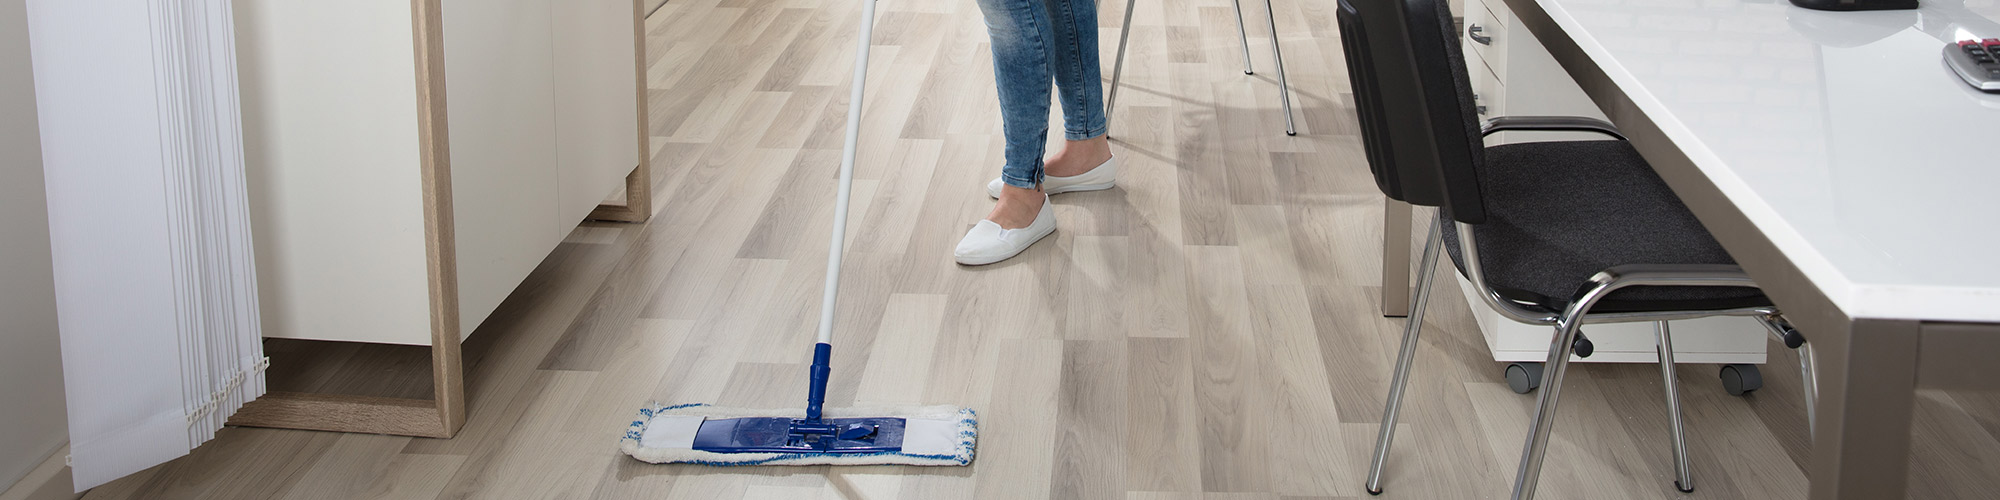 image of woman cleaning a hardwood floor with a mop